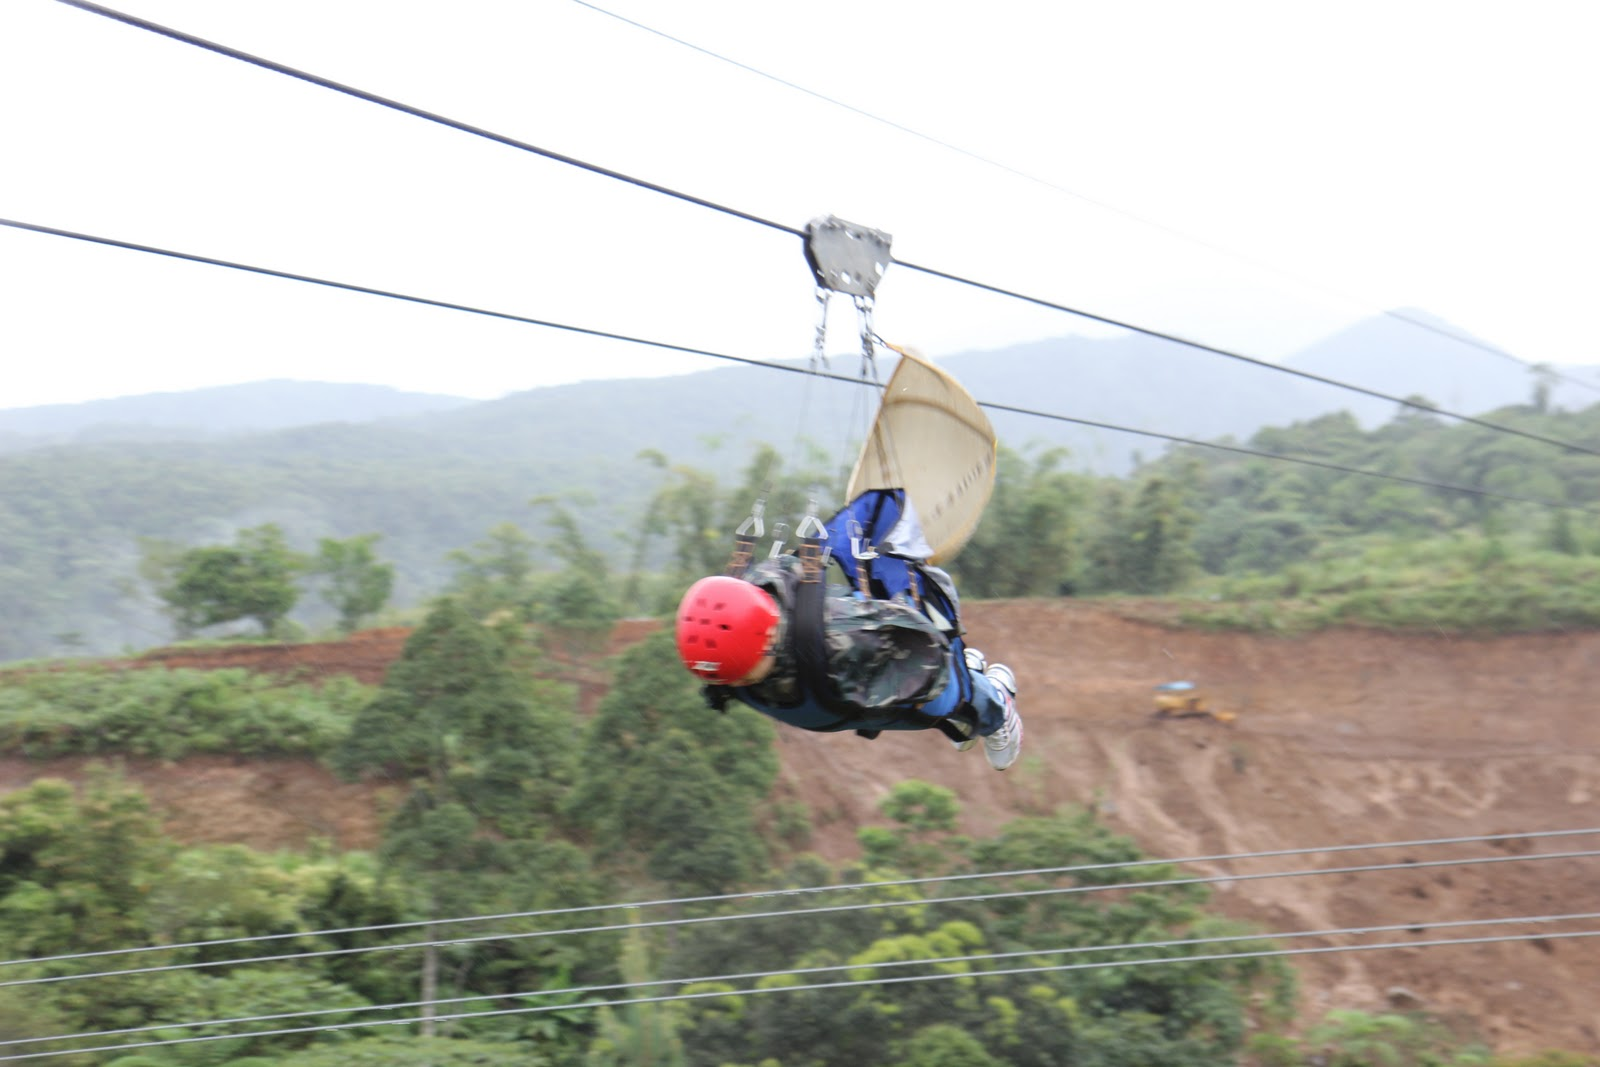 The tangled web zipline imagine when i was about to strap on and go zip well i did it it was like flying iron man style it was awesome solutioingenieria Images